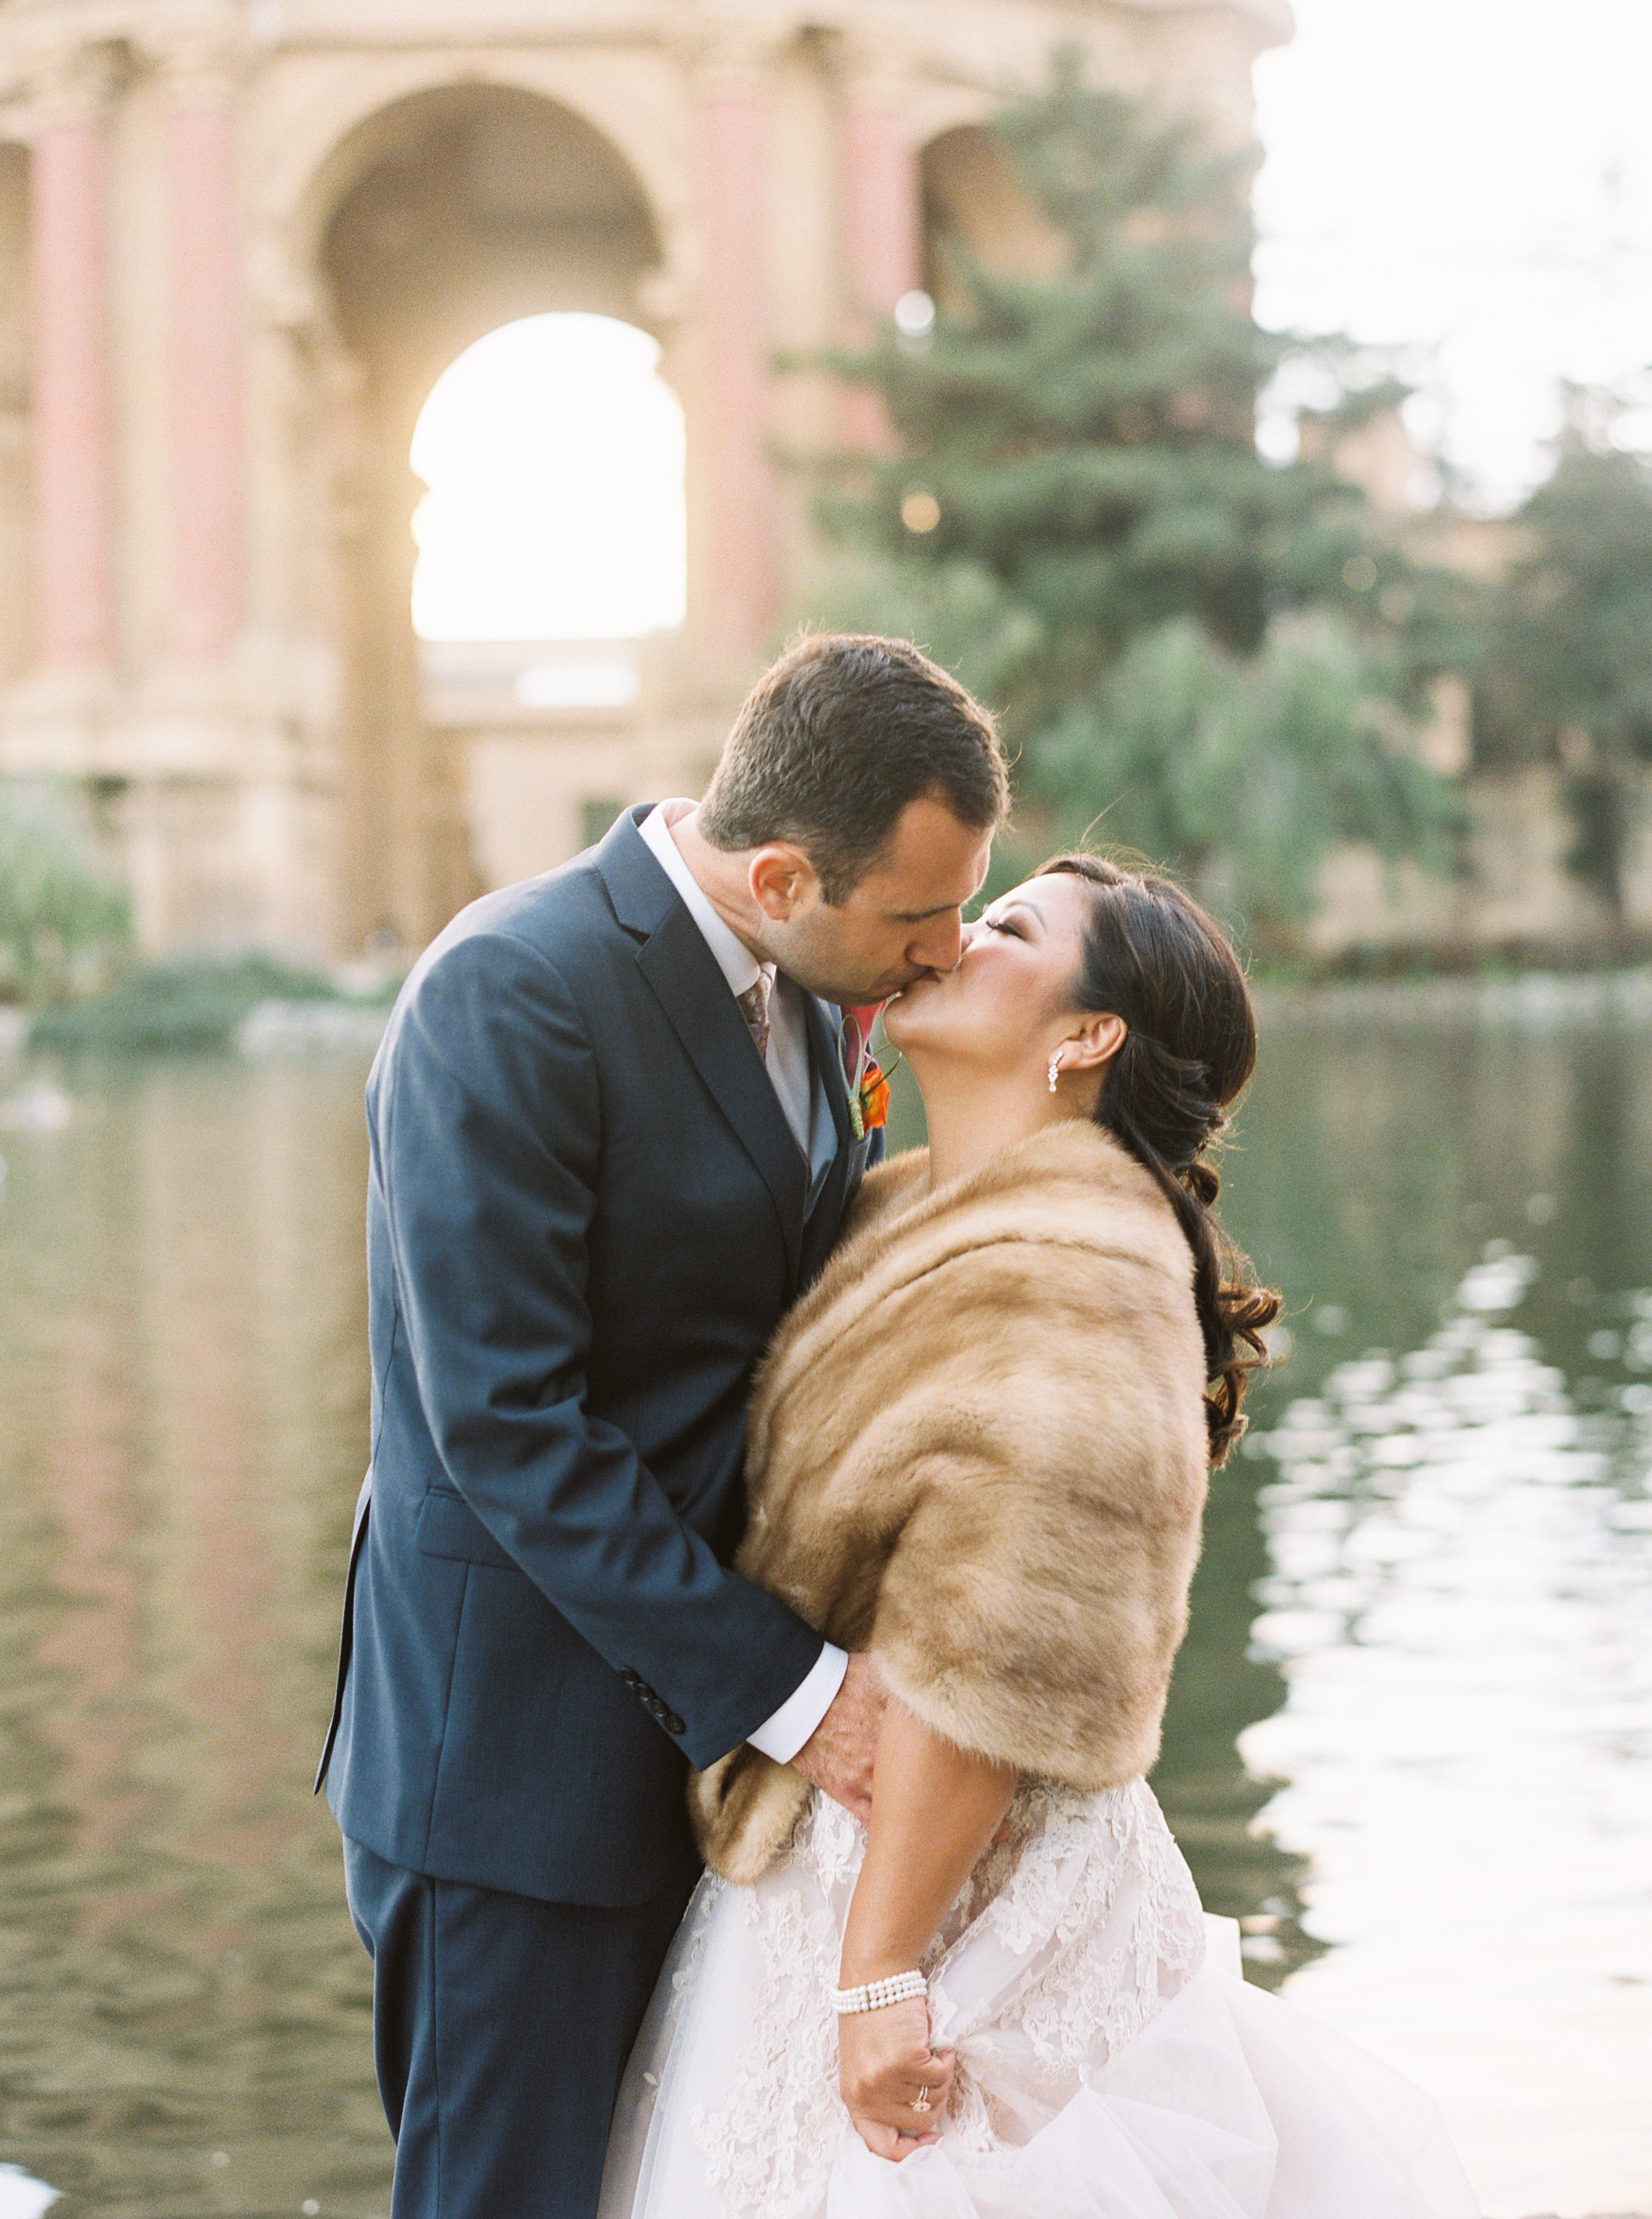 style-inspired-wedding-at-firehouse-8-in-san-francisco-149.jpg